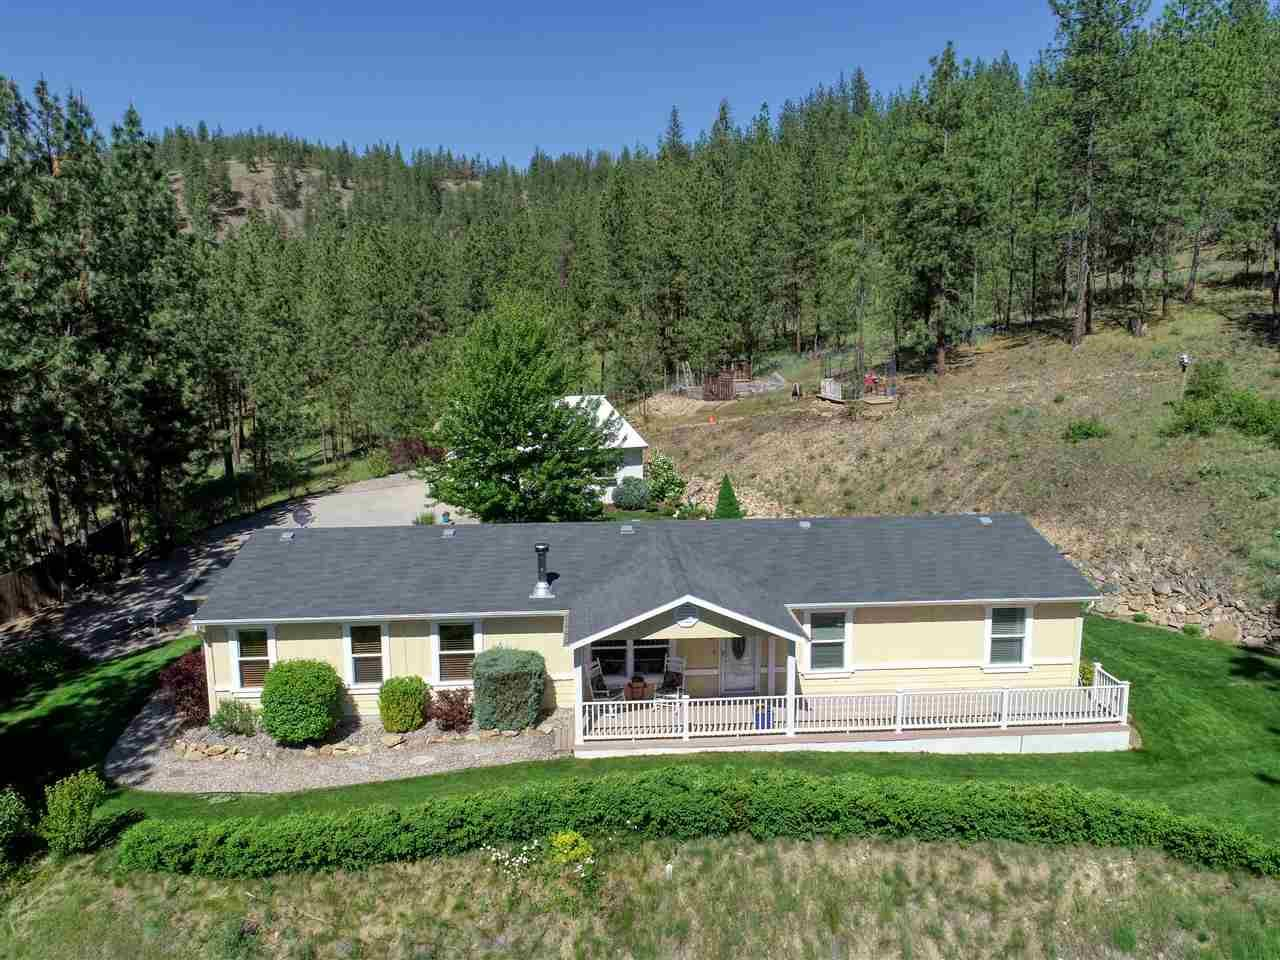 6300 W Bluebird Way, Deer Park, WA 99006 - #: 202016306